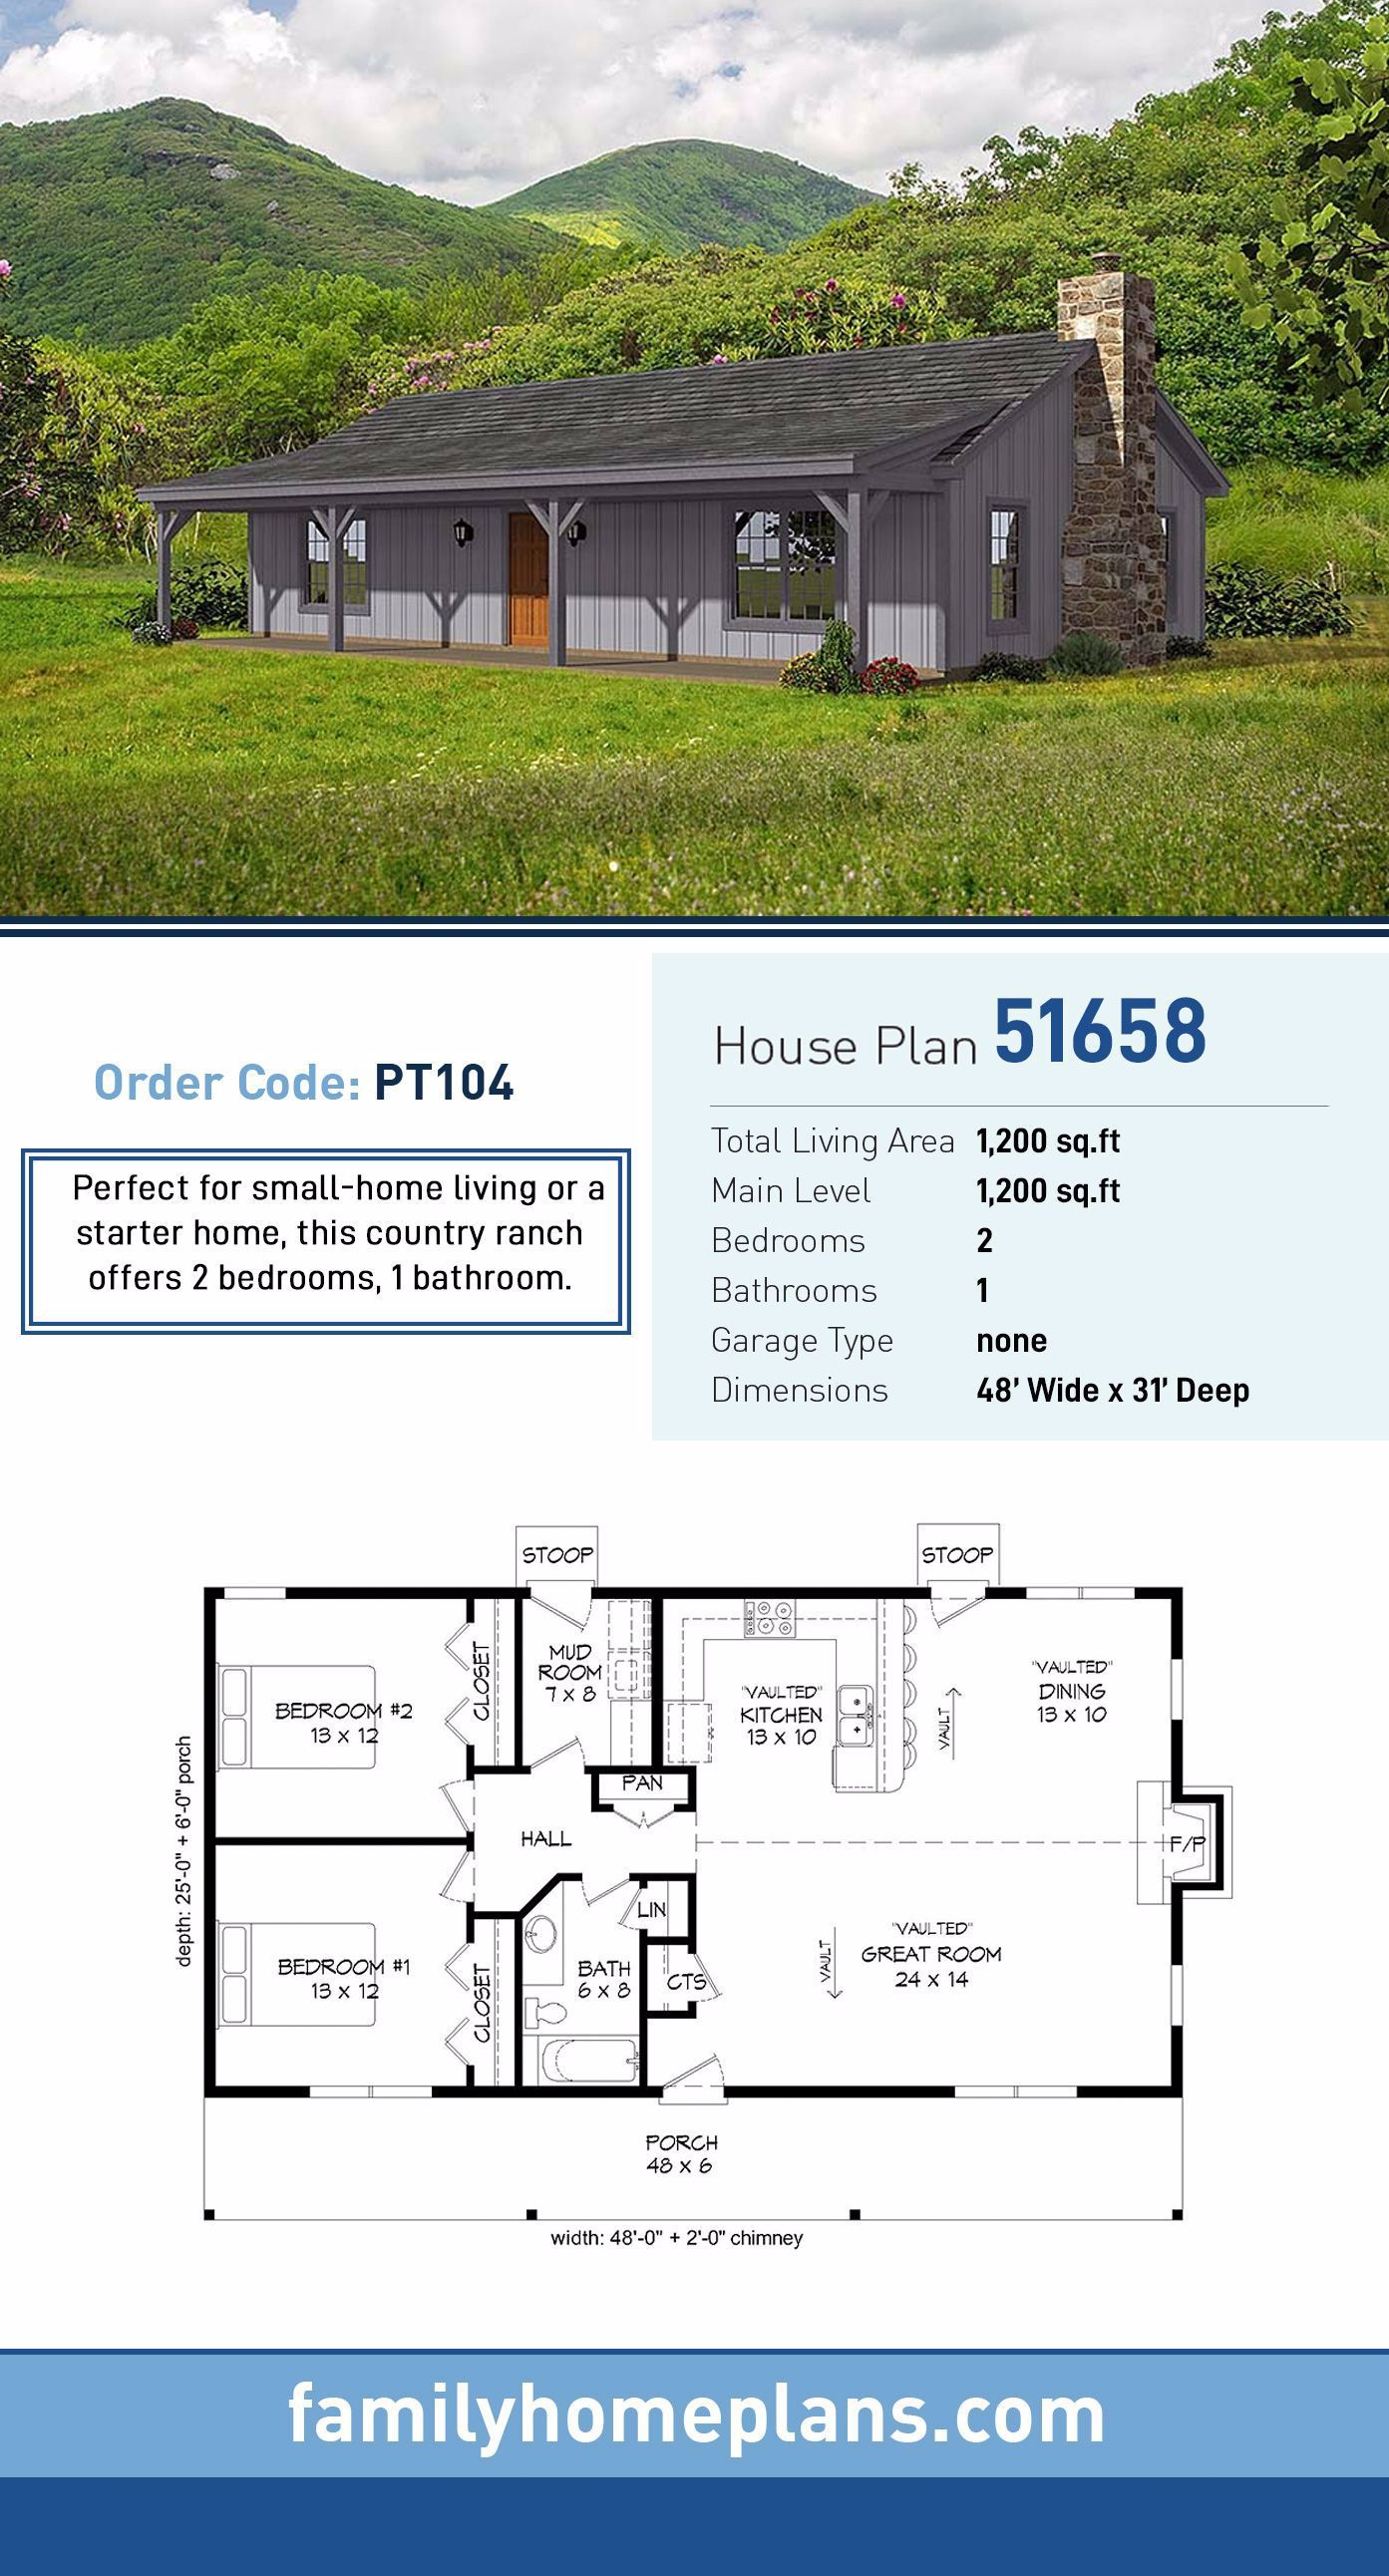 Starter Home Plan 51658 Total Living Area 1 200 Sq Ft 2 Bedrooms And 1 Bathroom Perfect For In 2020 Pole Barn House Plans Barn House Plans Ranch Style House Plans